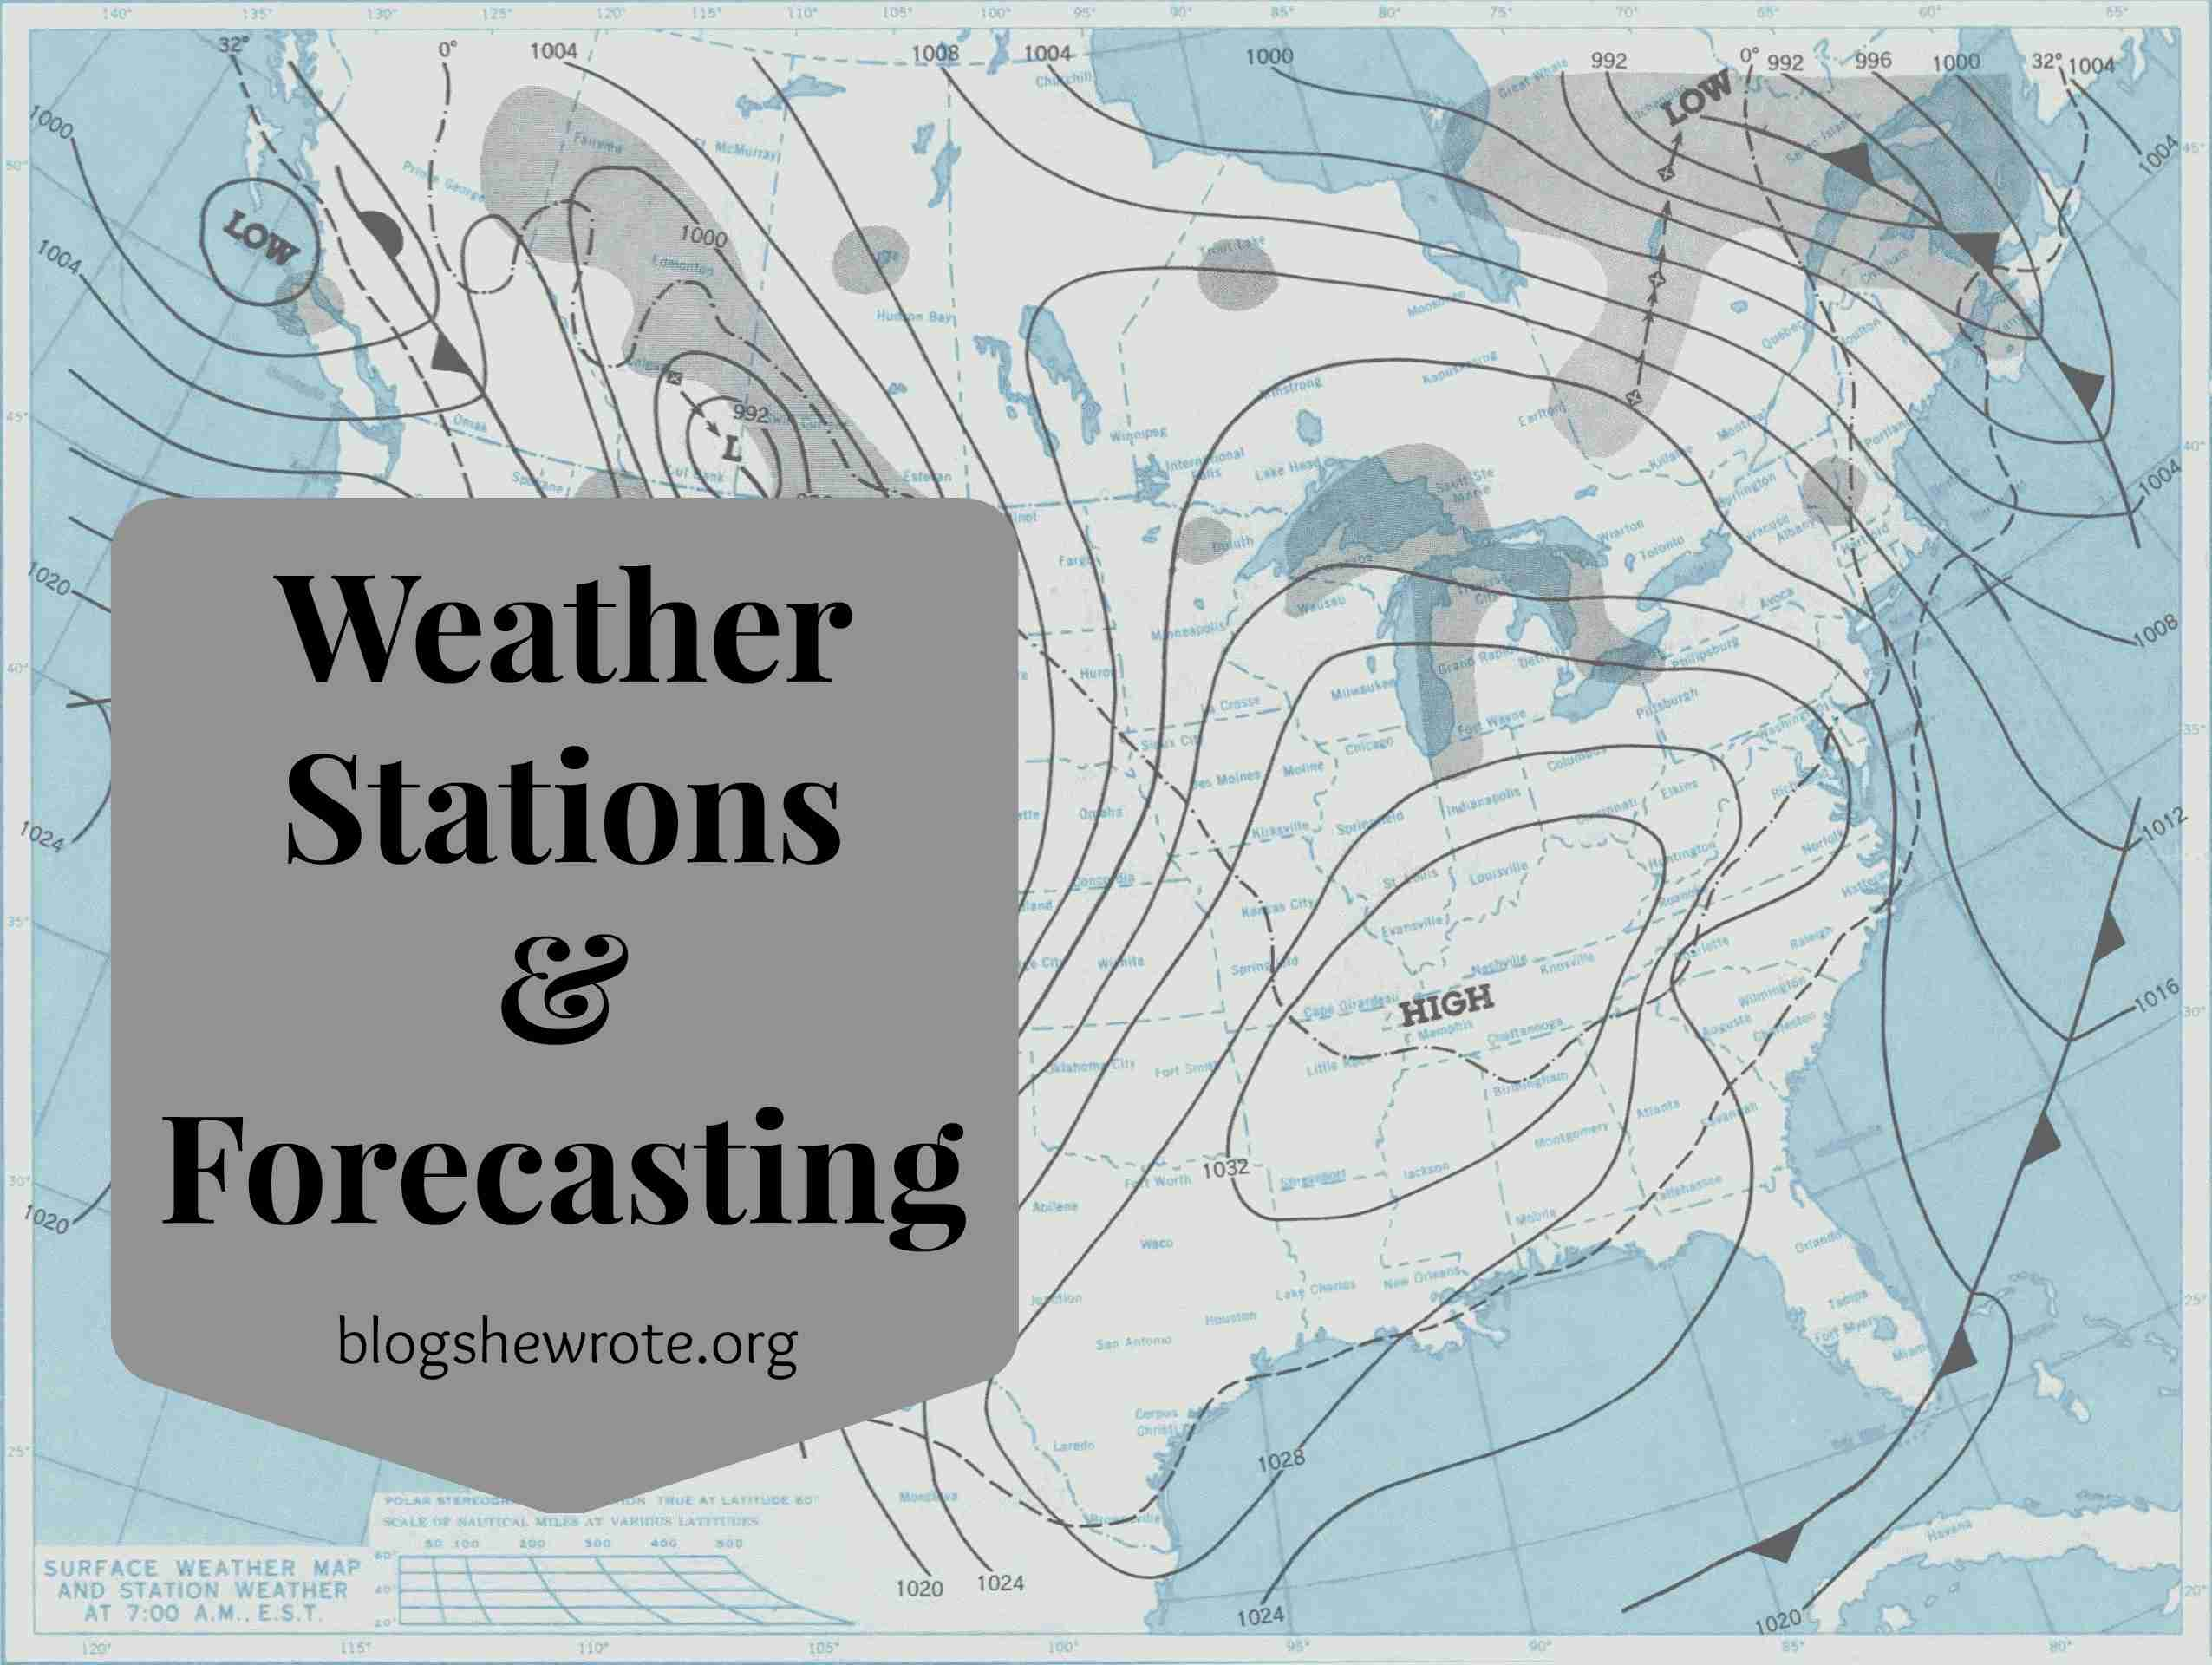 Blog, She Wrote: Weather Stations & Forecasting